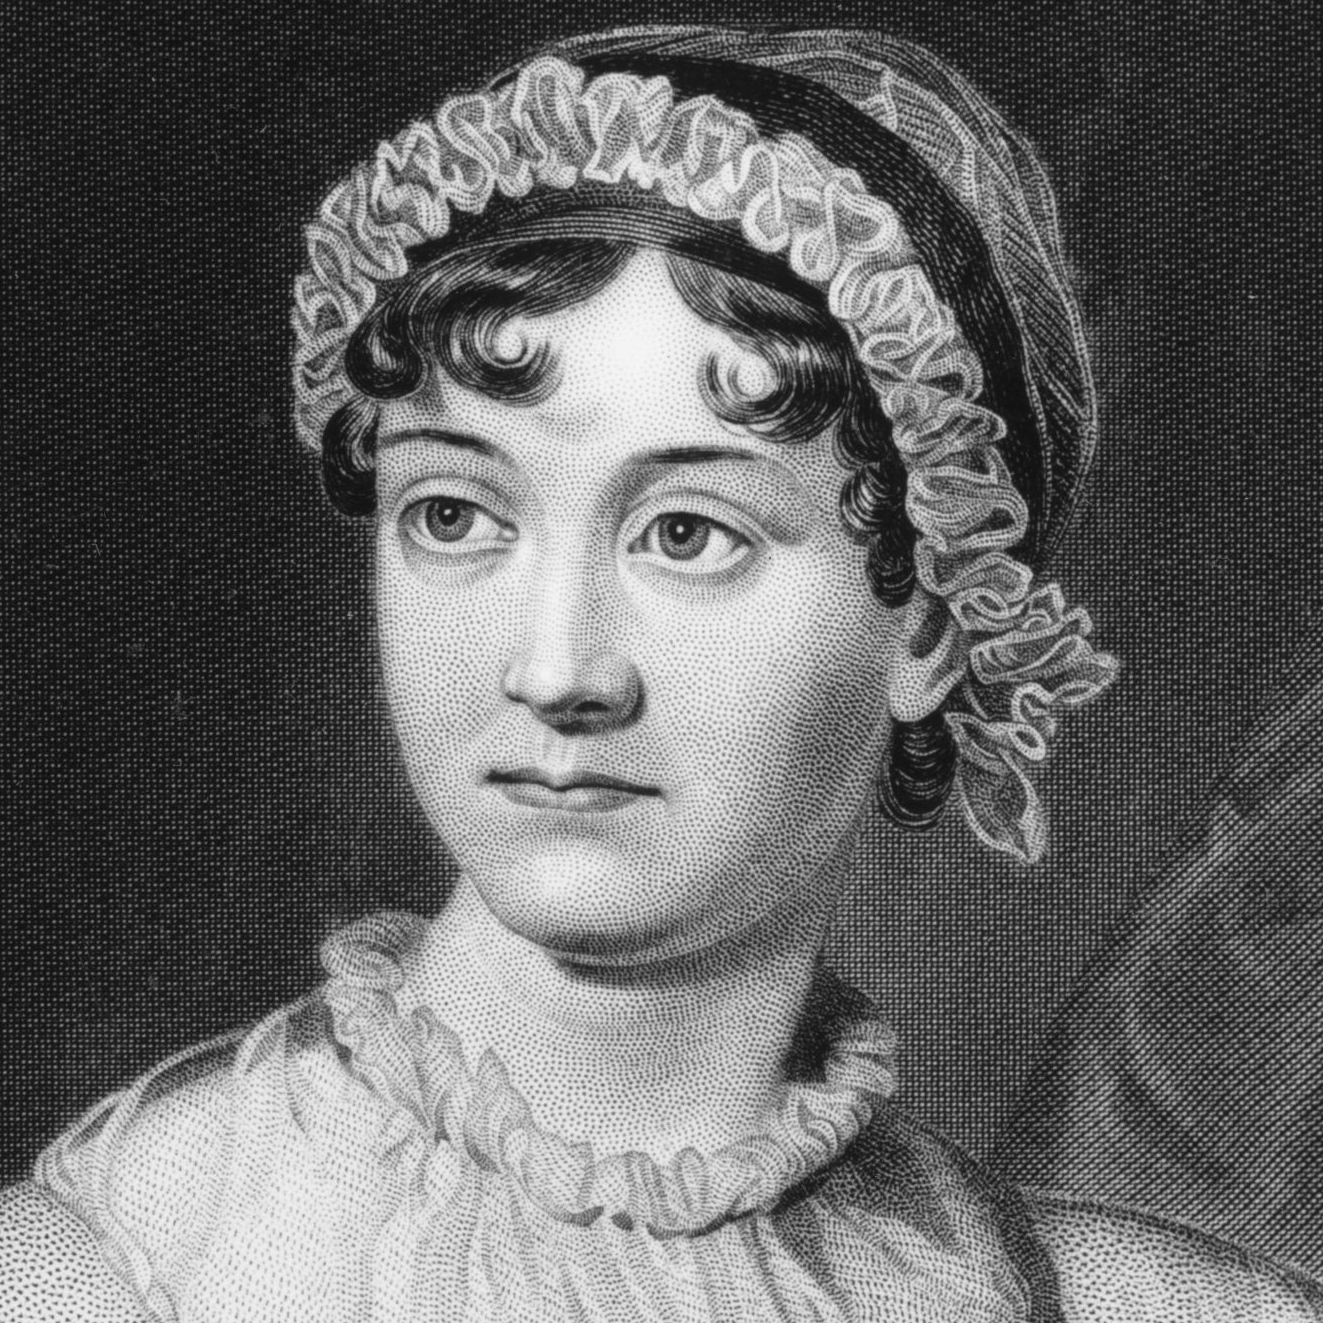 English novelist Jane Austen from an original family portrait.